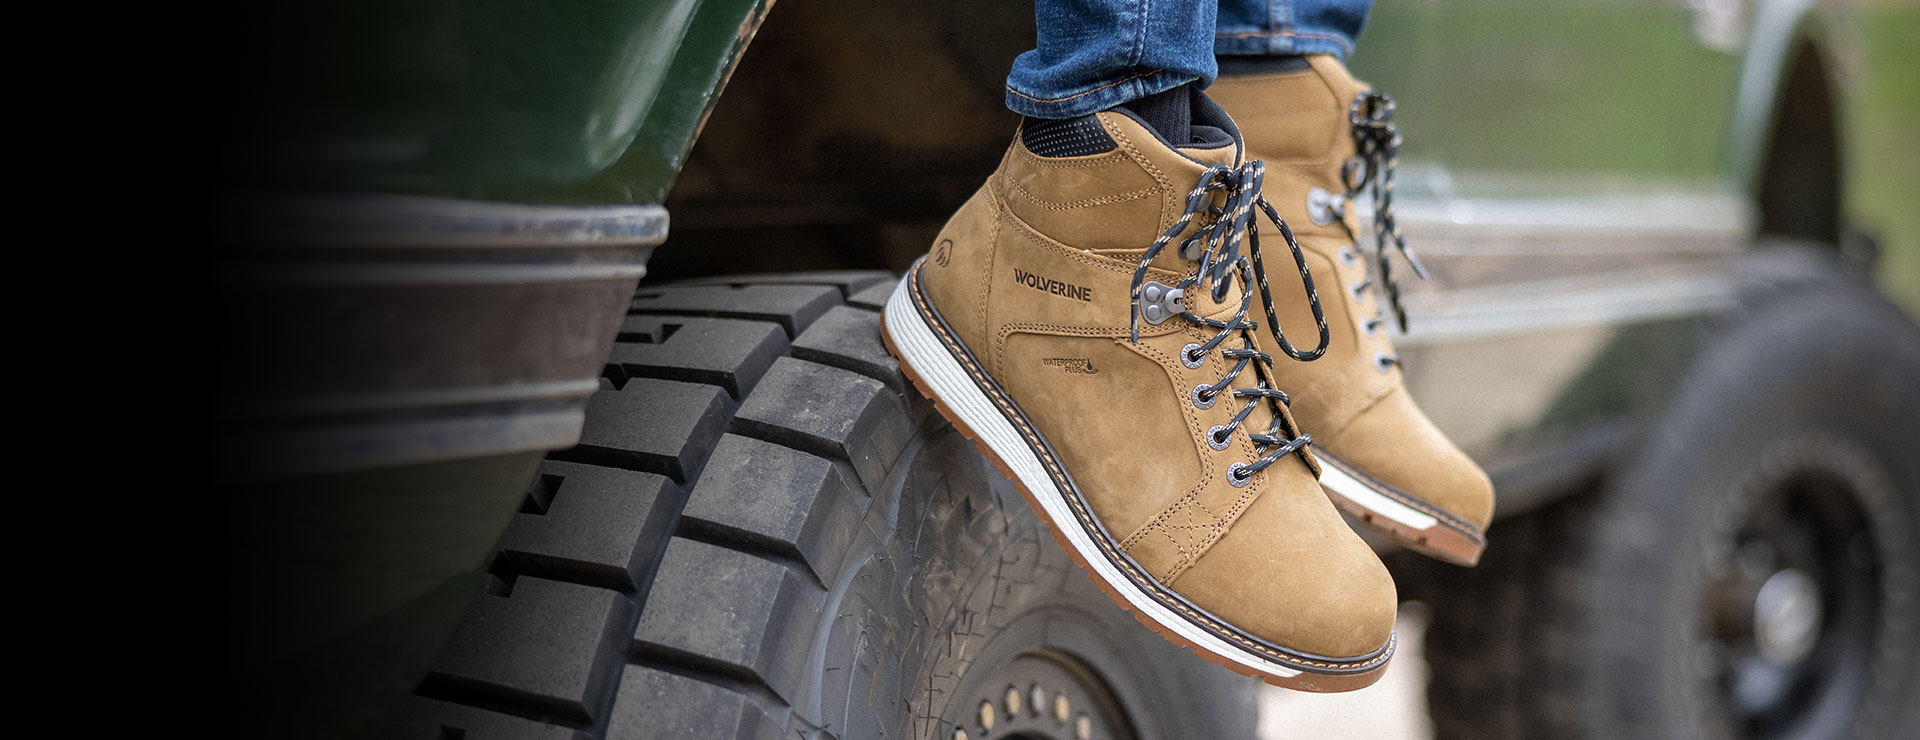 Ultraspring work boots sitting on a tire.